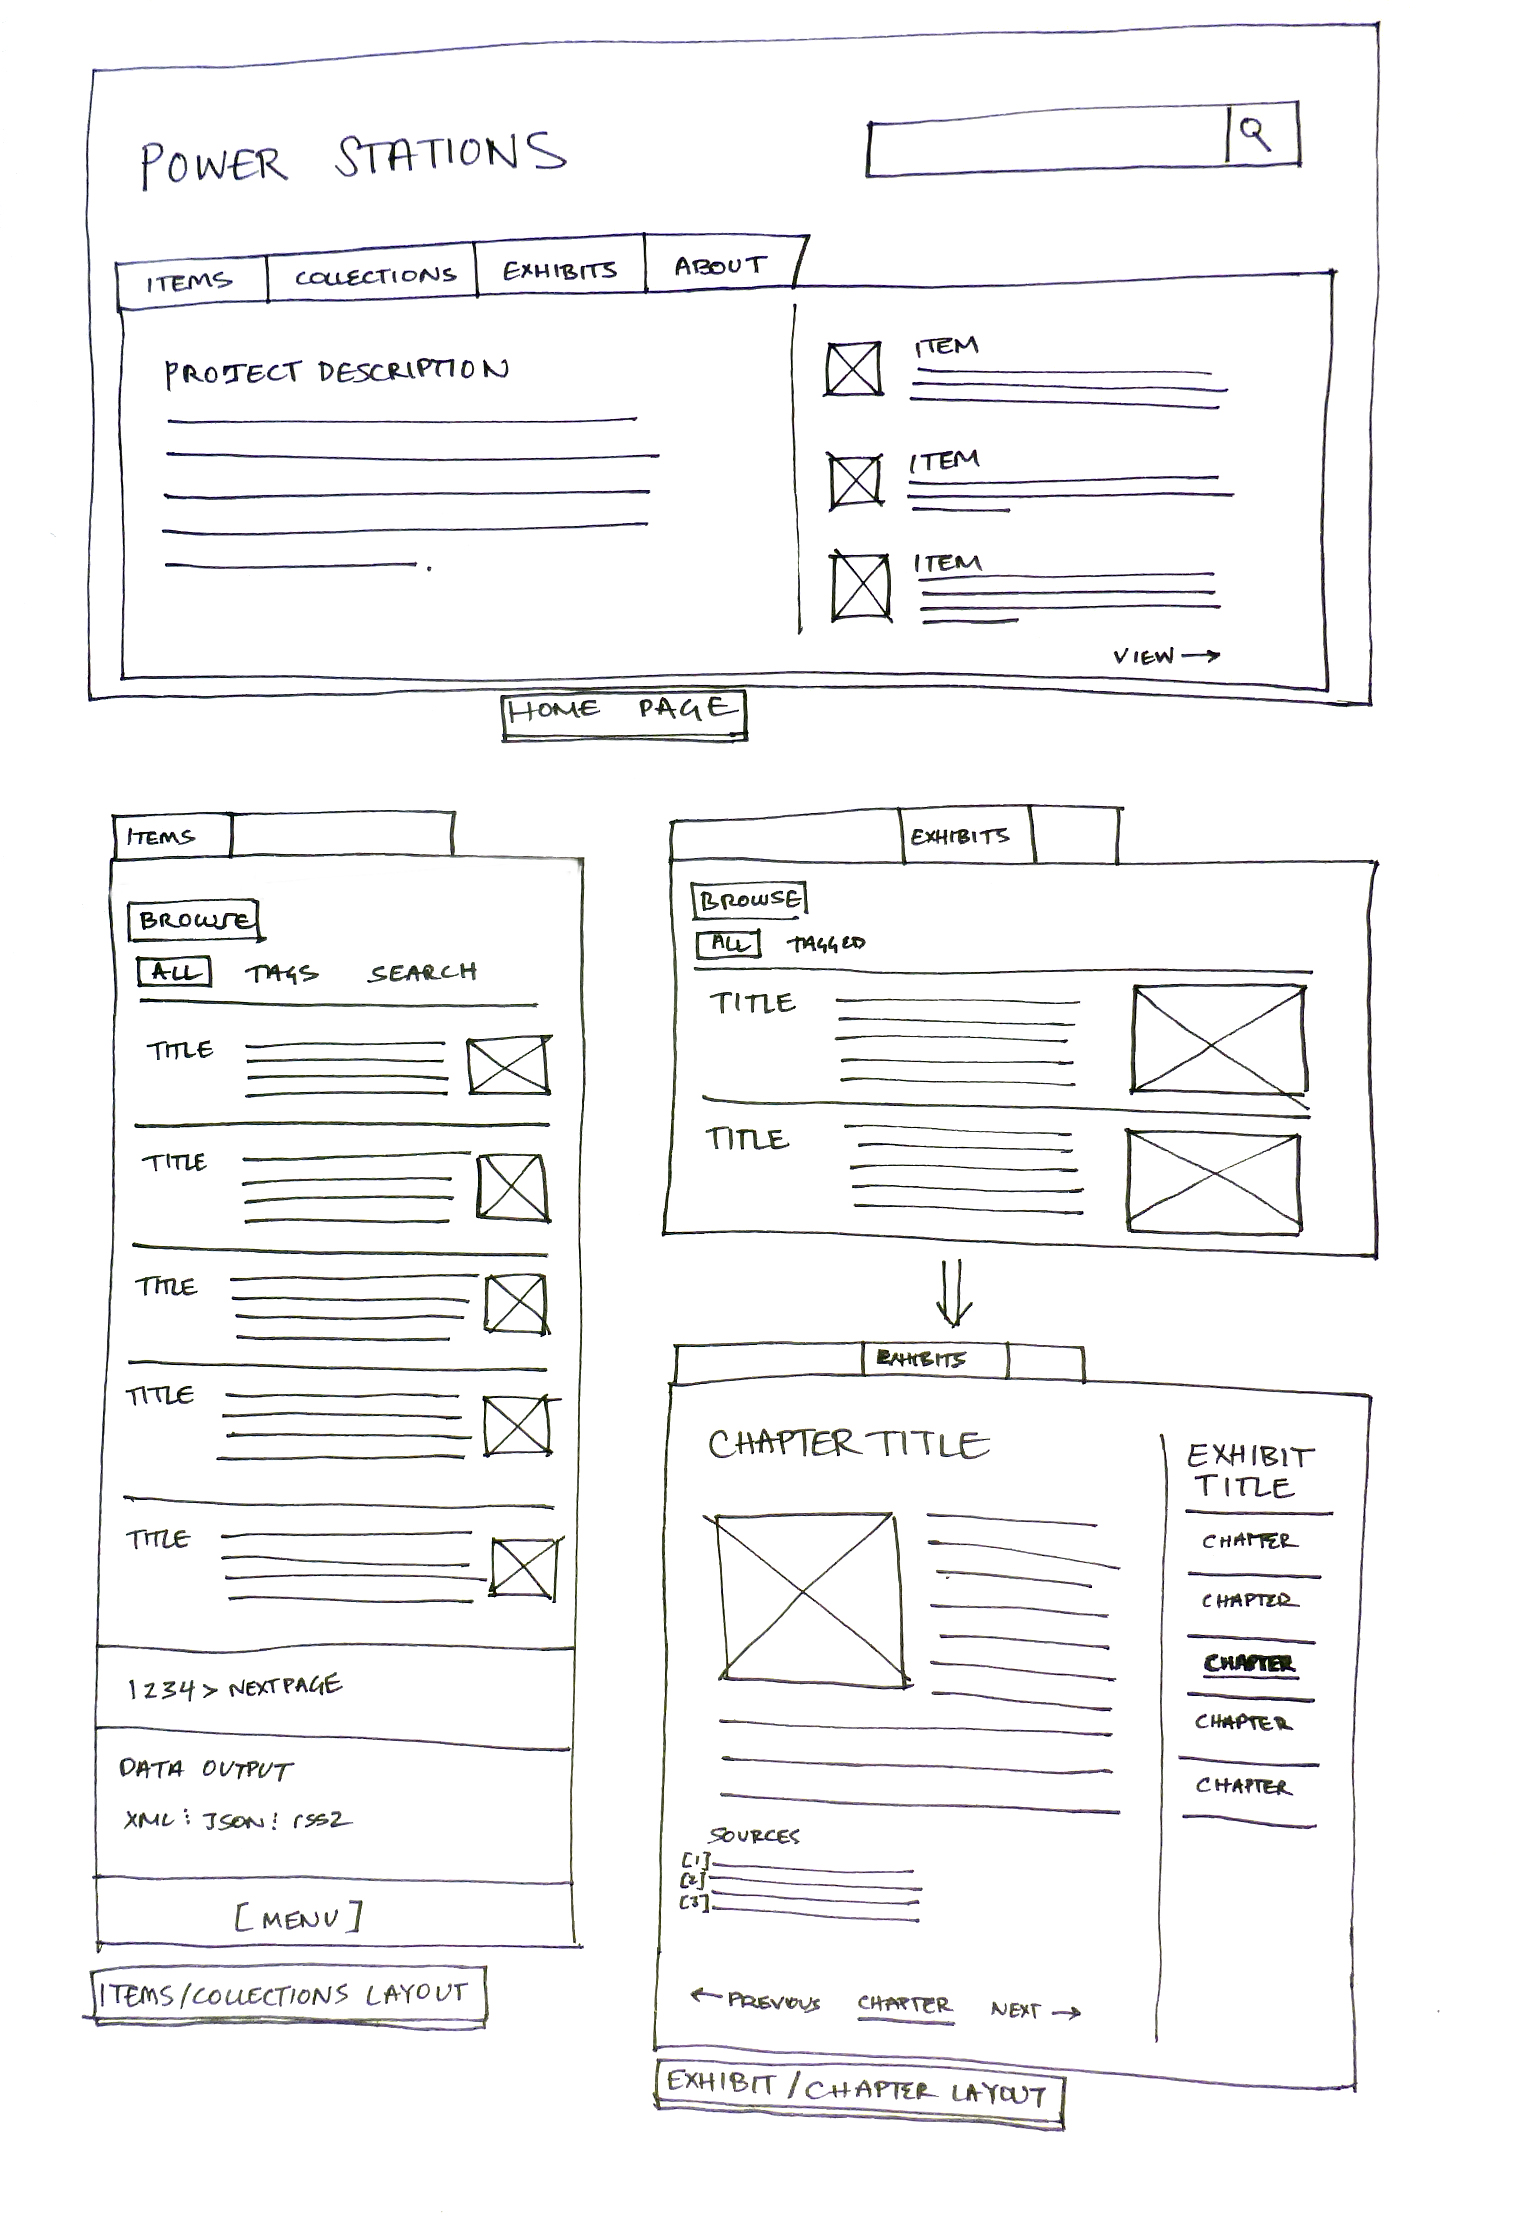 Wireframes of object/collection layout and exhibit layout